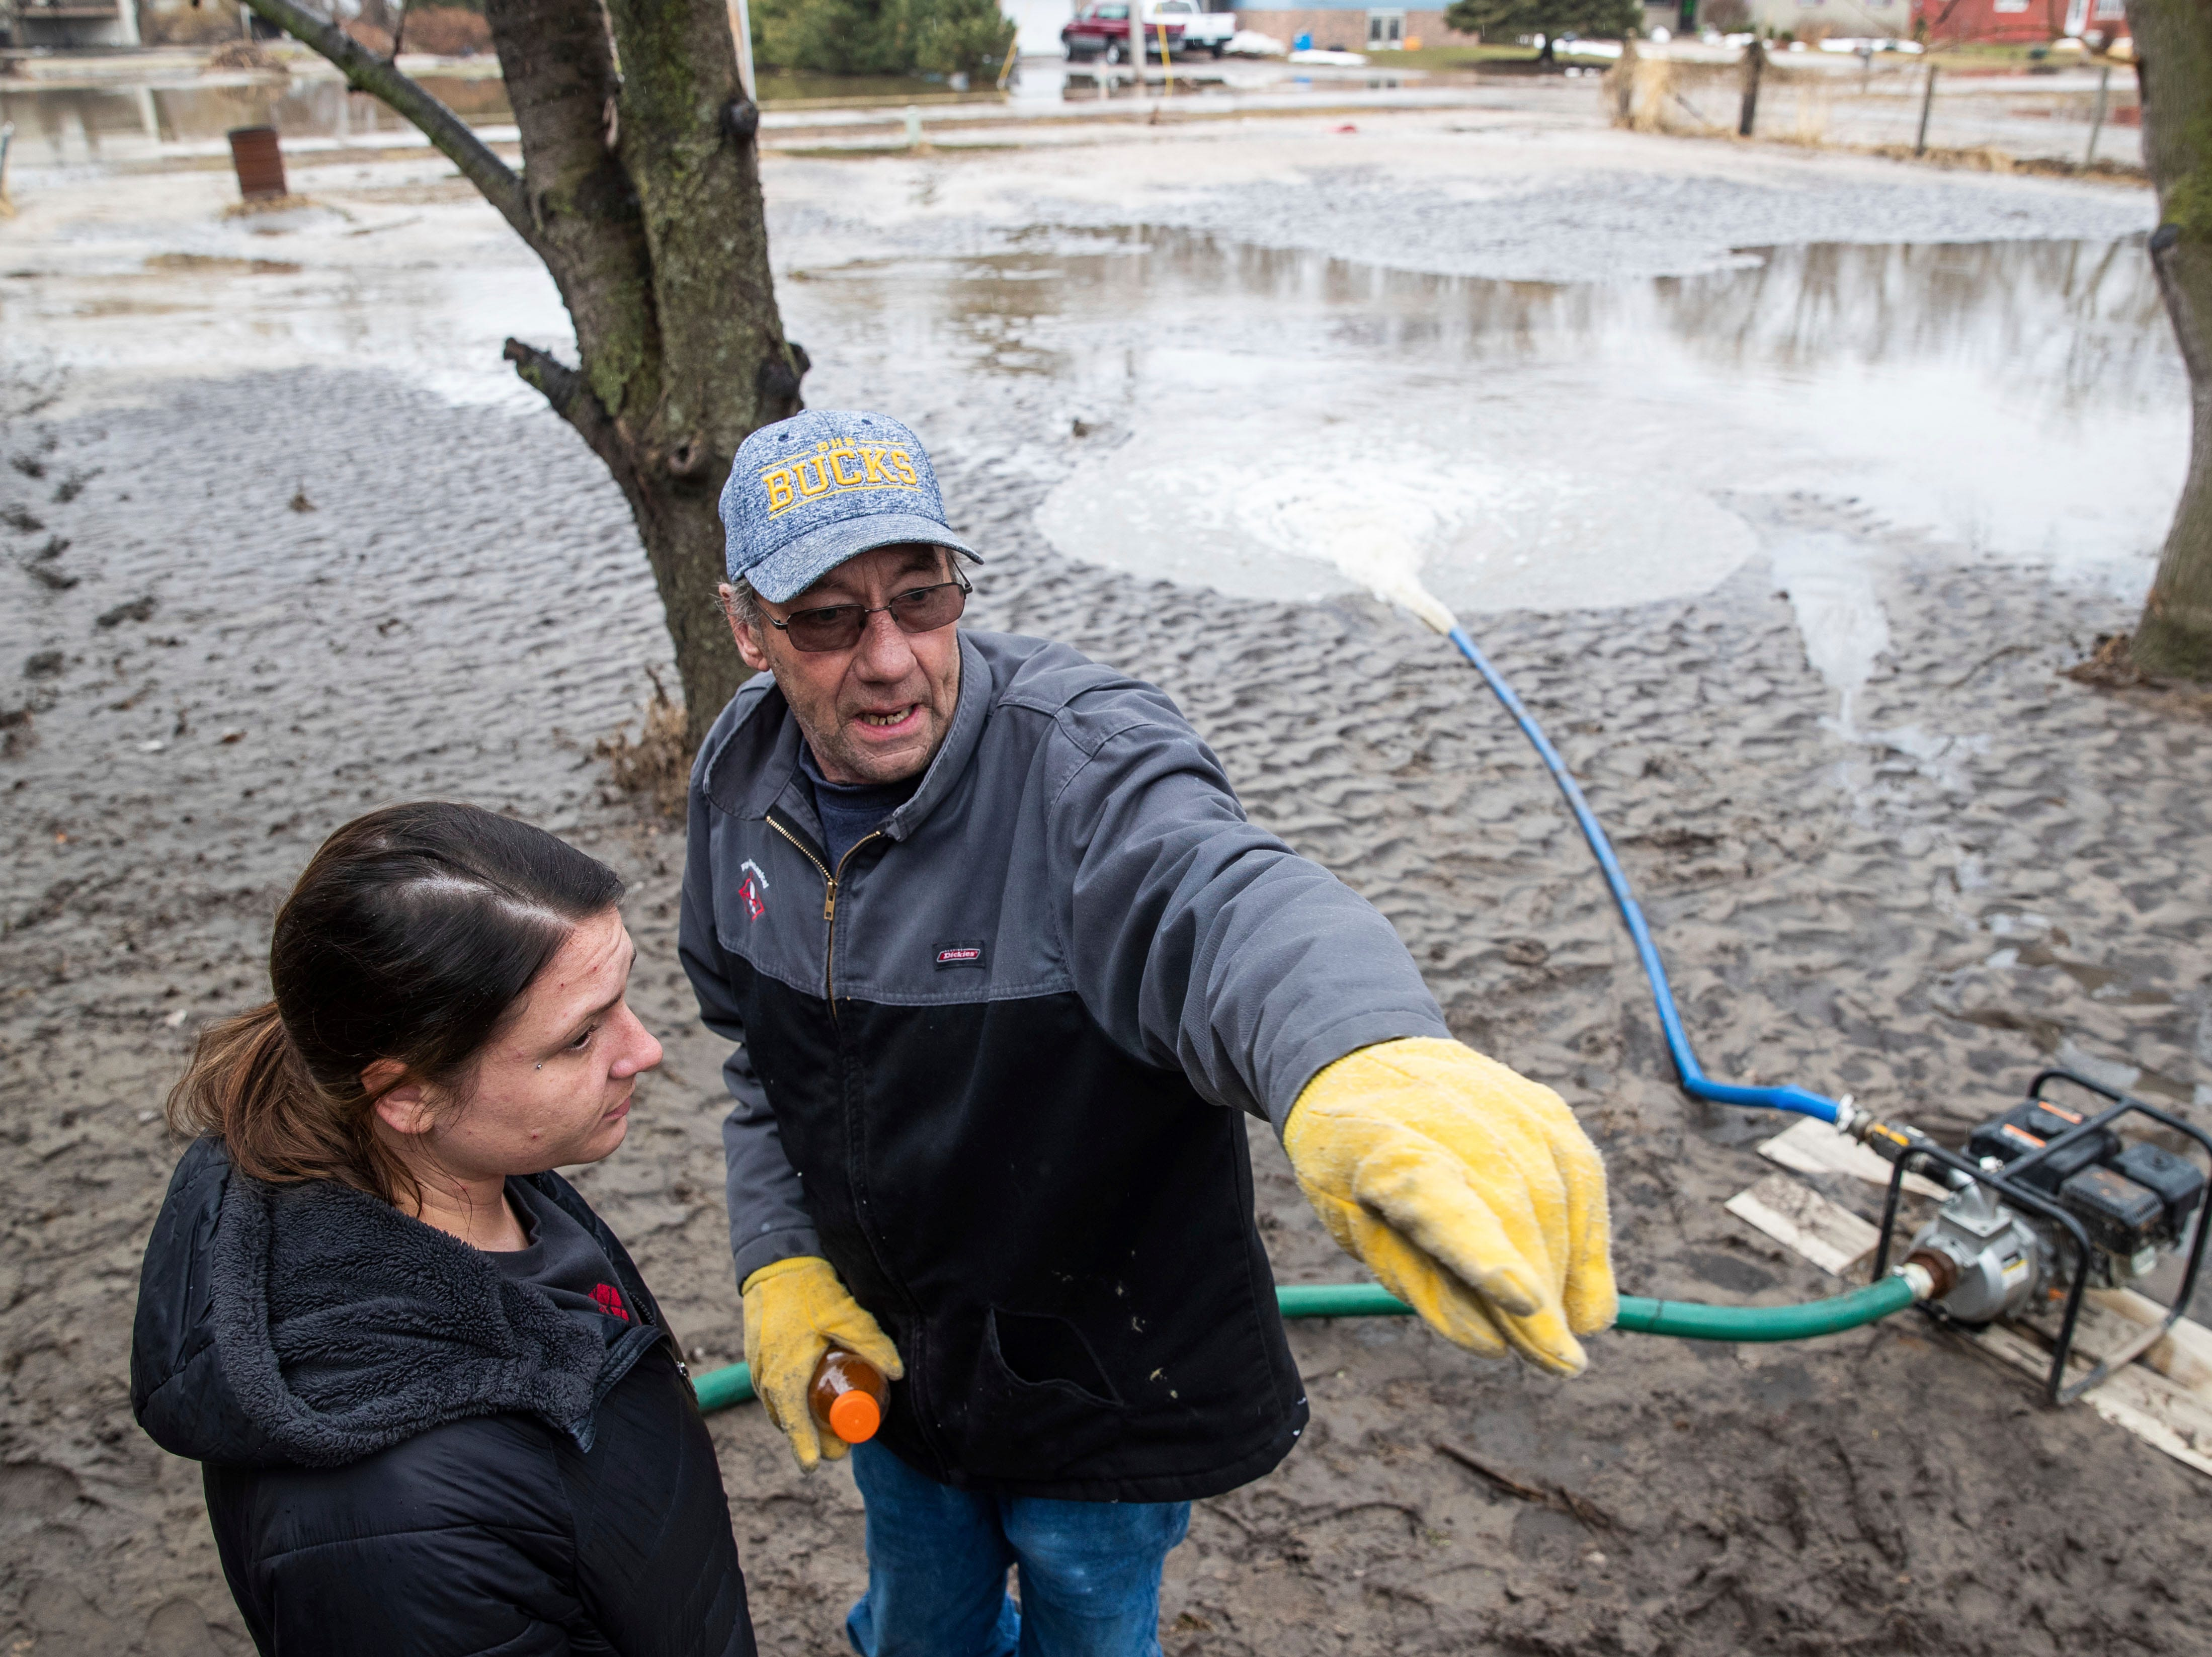 Brian Pemberton talks with Linzi Baker while trying to clear water from a home Tuesday, March 19, 2019, in Inglewood, Neb. Flooding is expected throughout the week in several states as high water levels flow down the Missouri River. Swollen rivers have already breached more than a dozen levees in Nebraska, Iowa and Missouri, according to the U.S. Army Corps of Engineers.